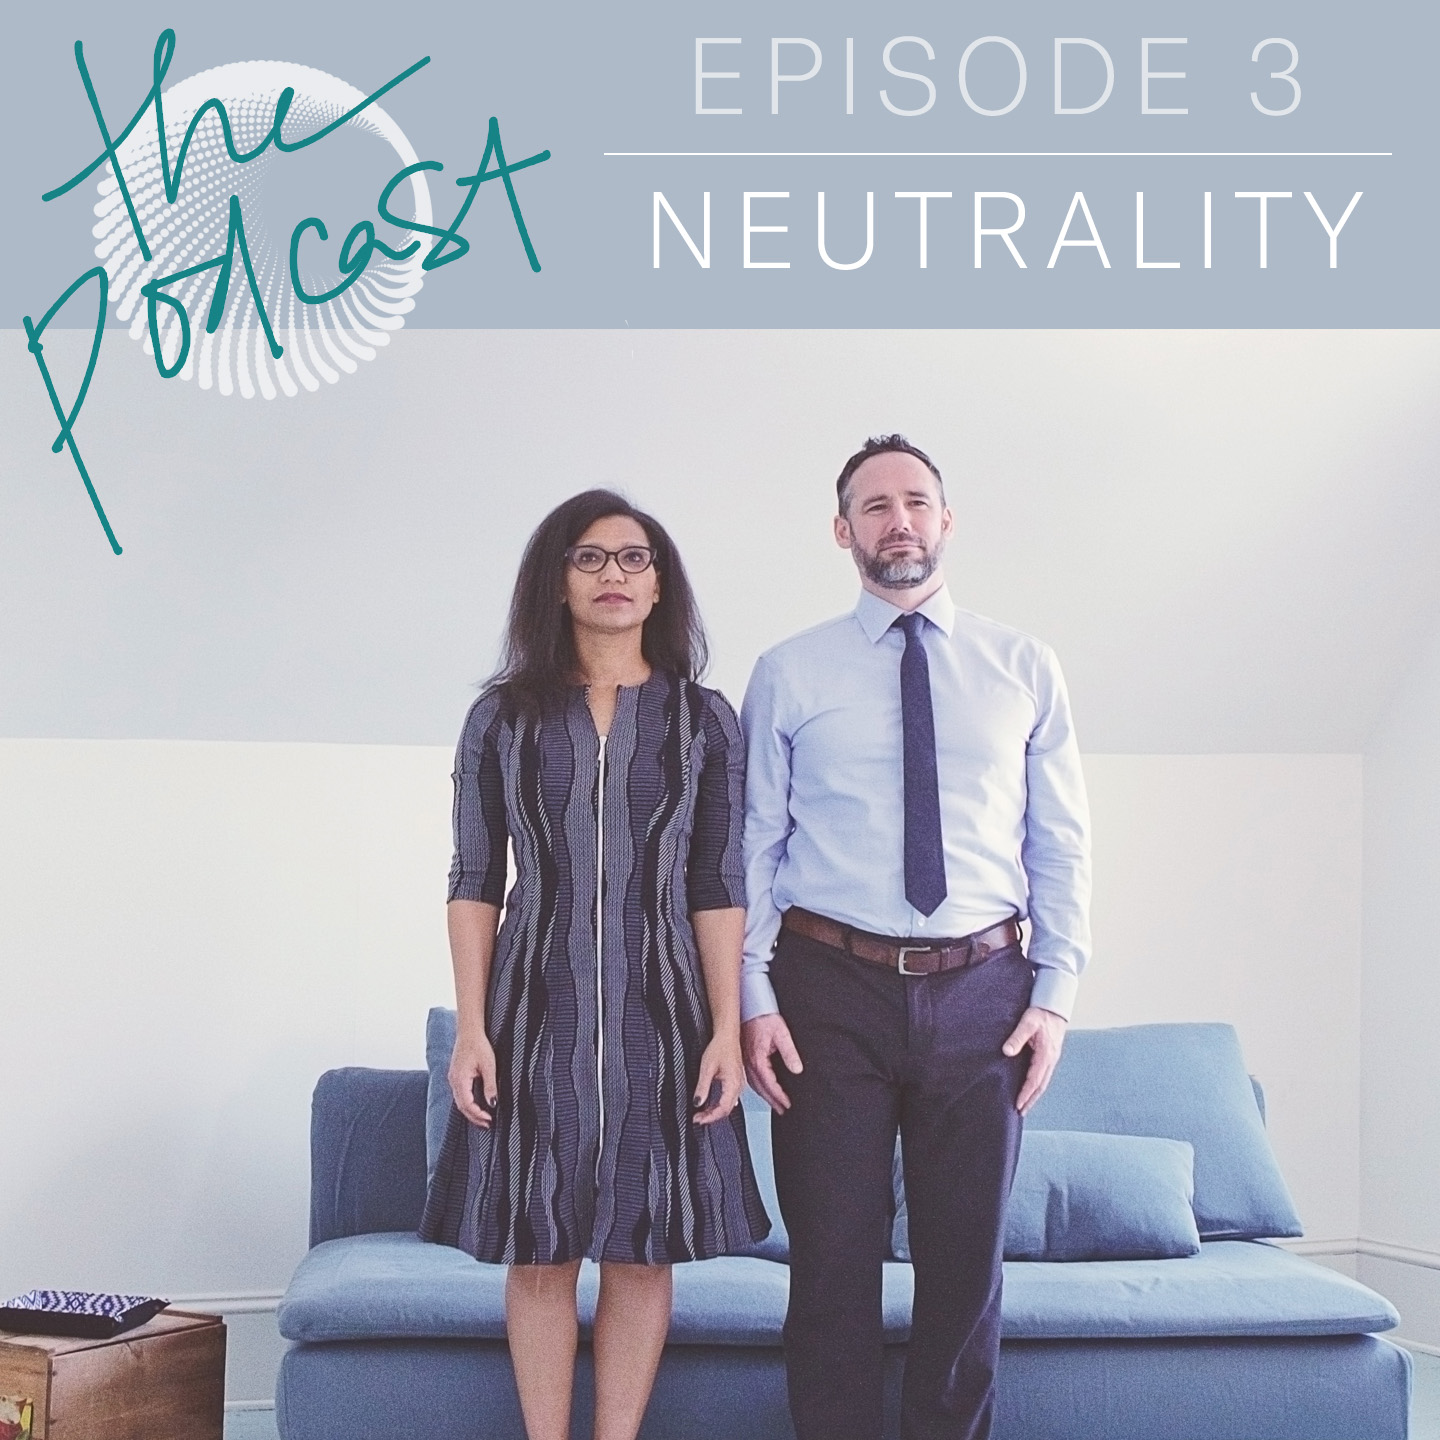 Episode 1.03: Neutrality   THE HOW-TO OF FACILITATION THAT BRINGS MORE — IDEAS, VOICES, CLARITY — FORWARD  Tim and Tuesday contemplate the nature of neutrality for hosts or facilitators. What are our obligations towards the people in the room?  For show notes, visit the episode page.  || October 2, 2018